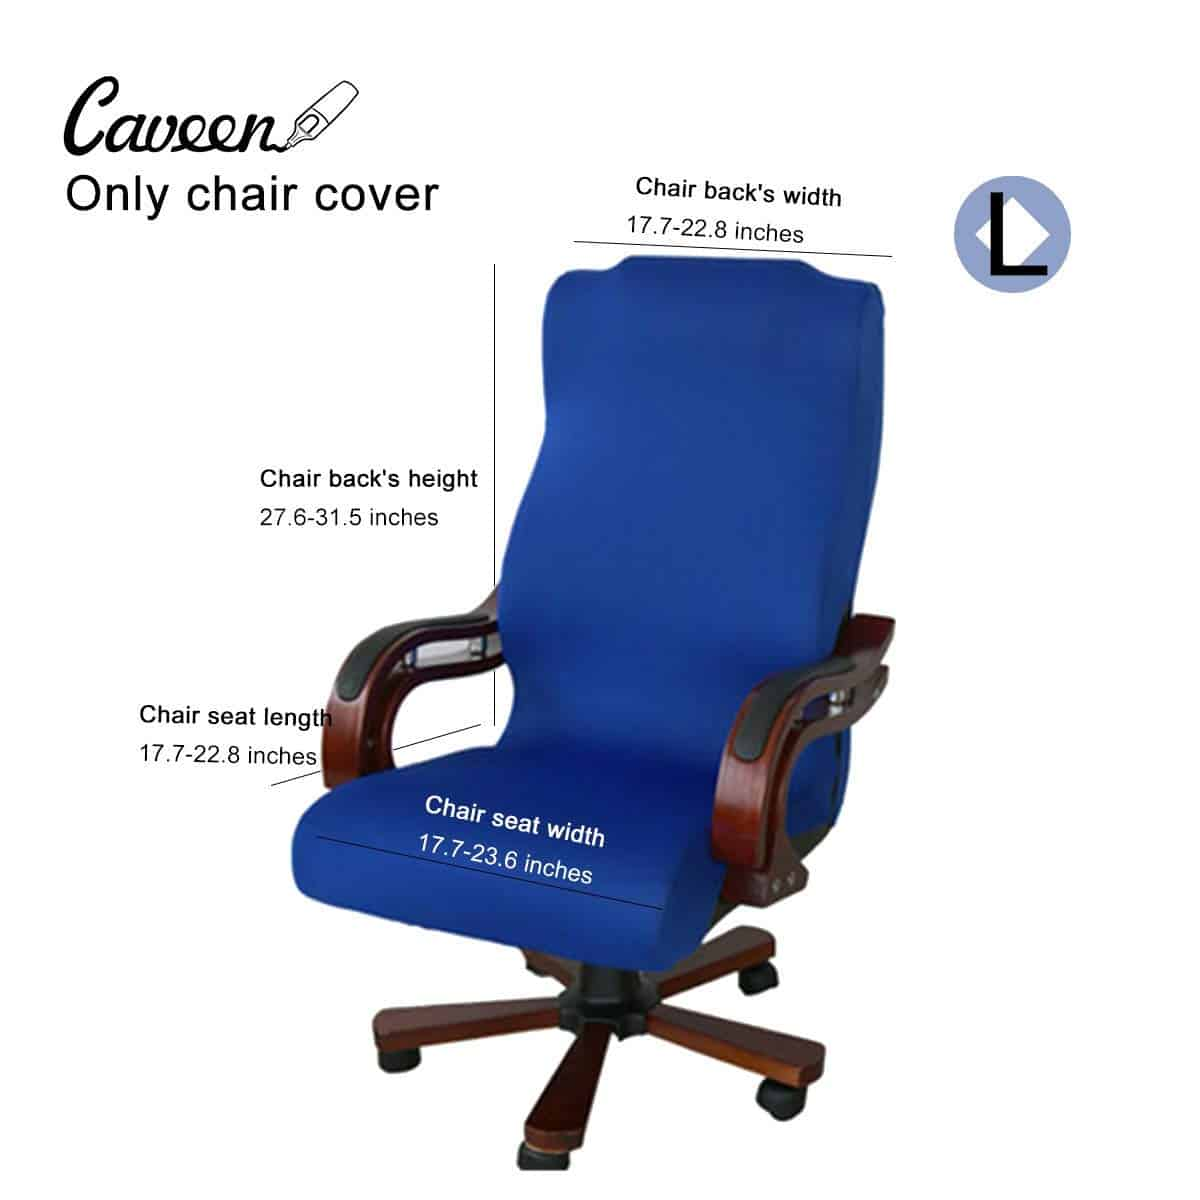 Swell 10 Best Office Chair Covers Reviewed Dec 2019 Buythebest10 Gmtry Best Dining Table And Chair Ideas Images Gmtryco